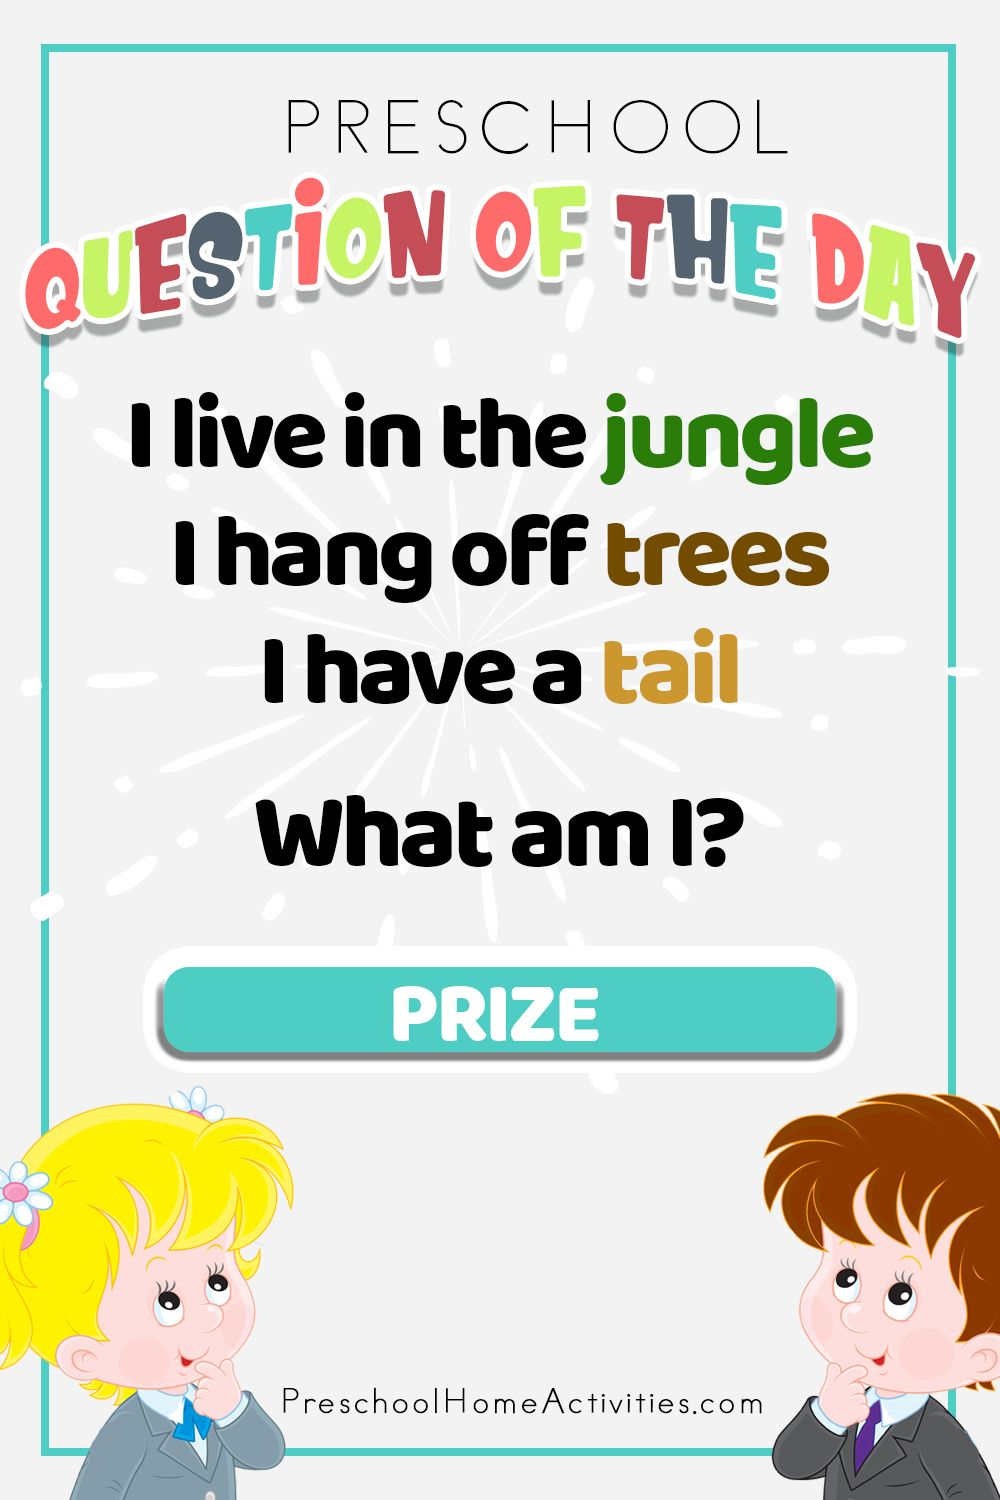 Here's the preschool question of the day. An animal riddle